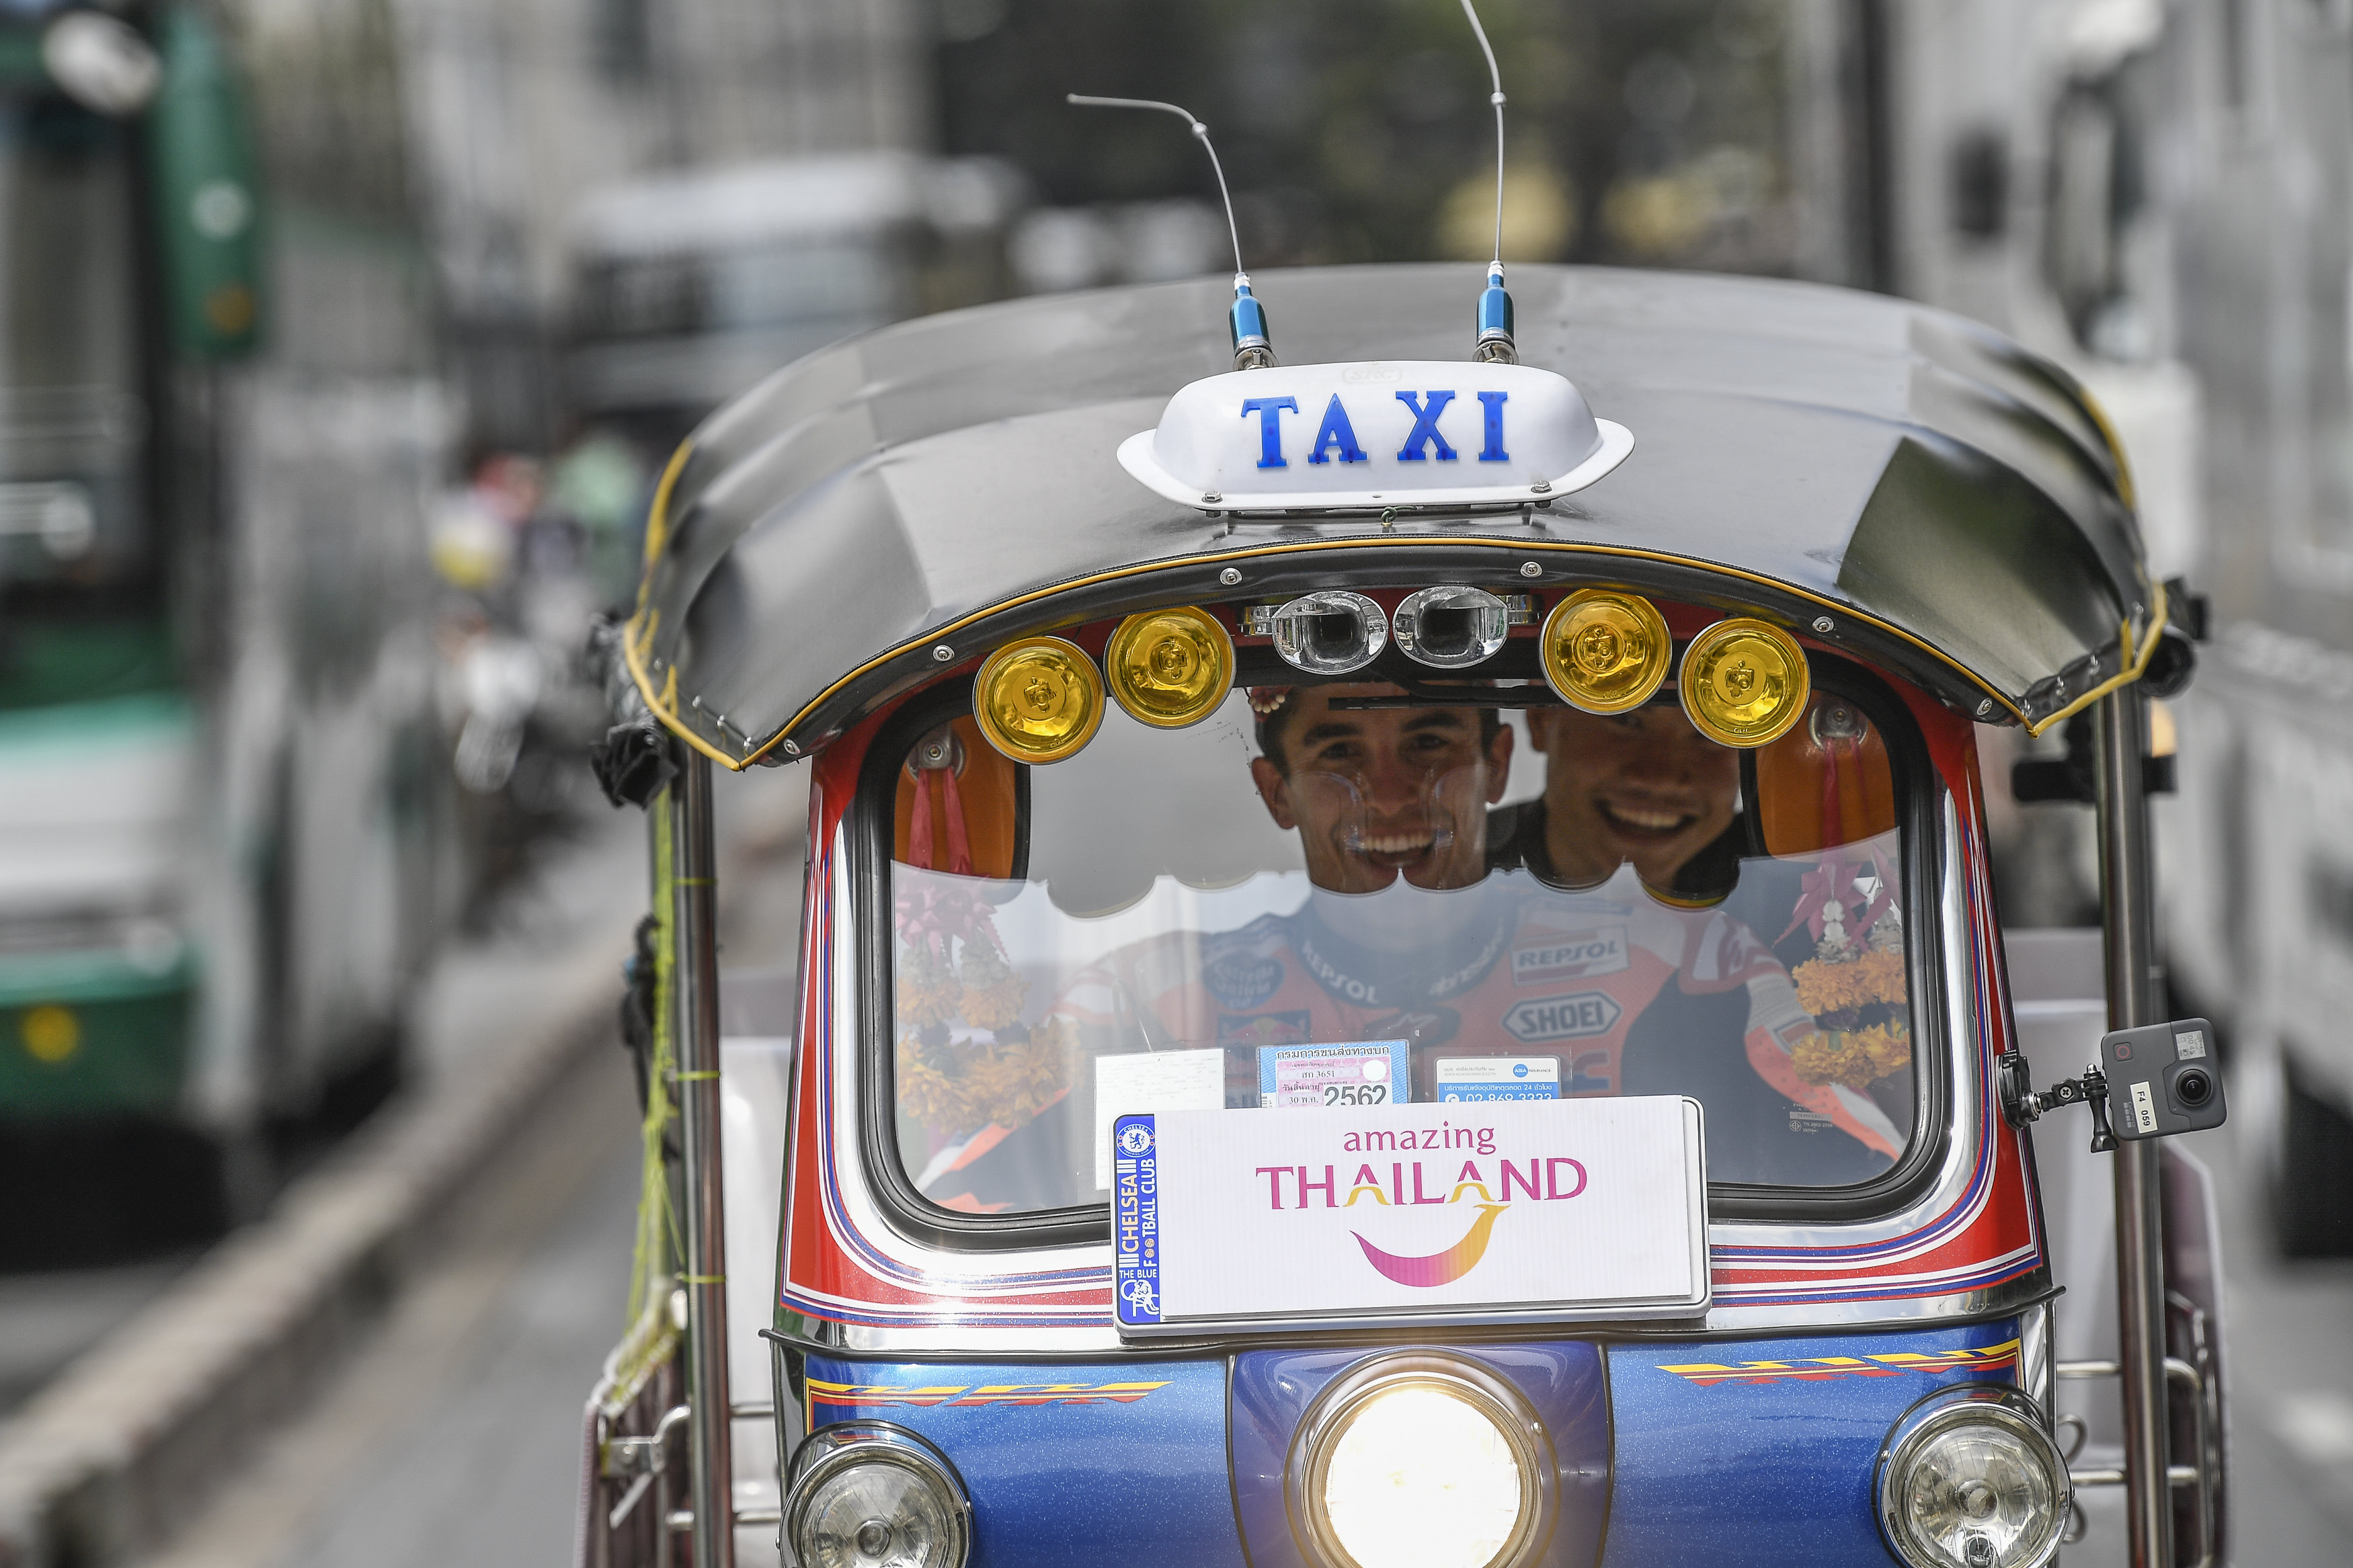 Exploring Bangkok by Tuk Tuk. Image: crash.net